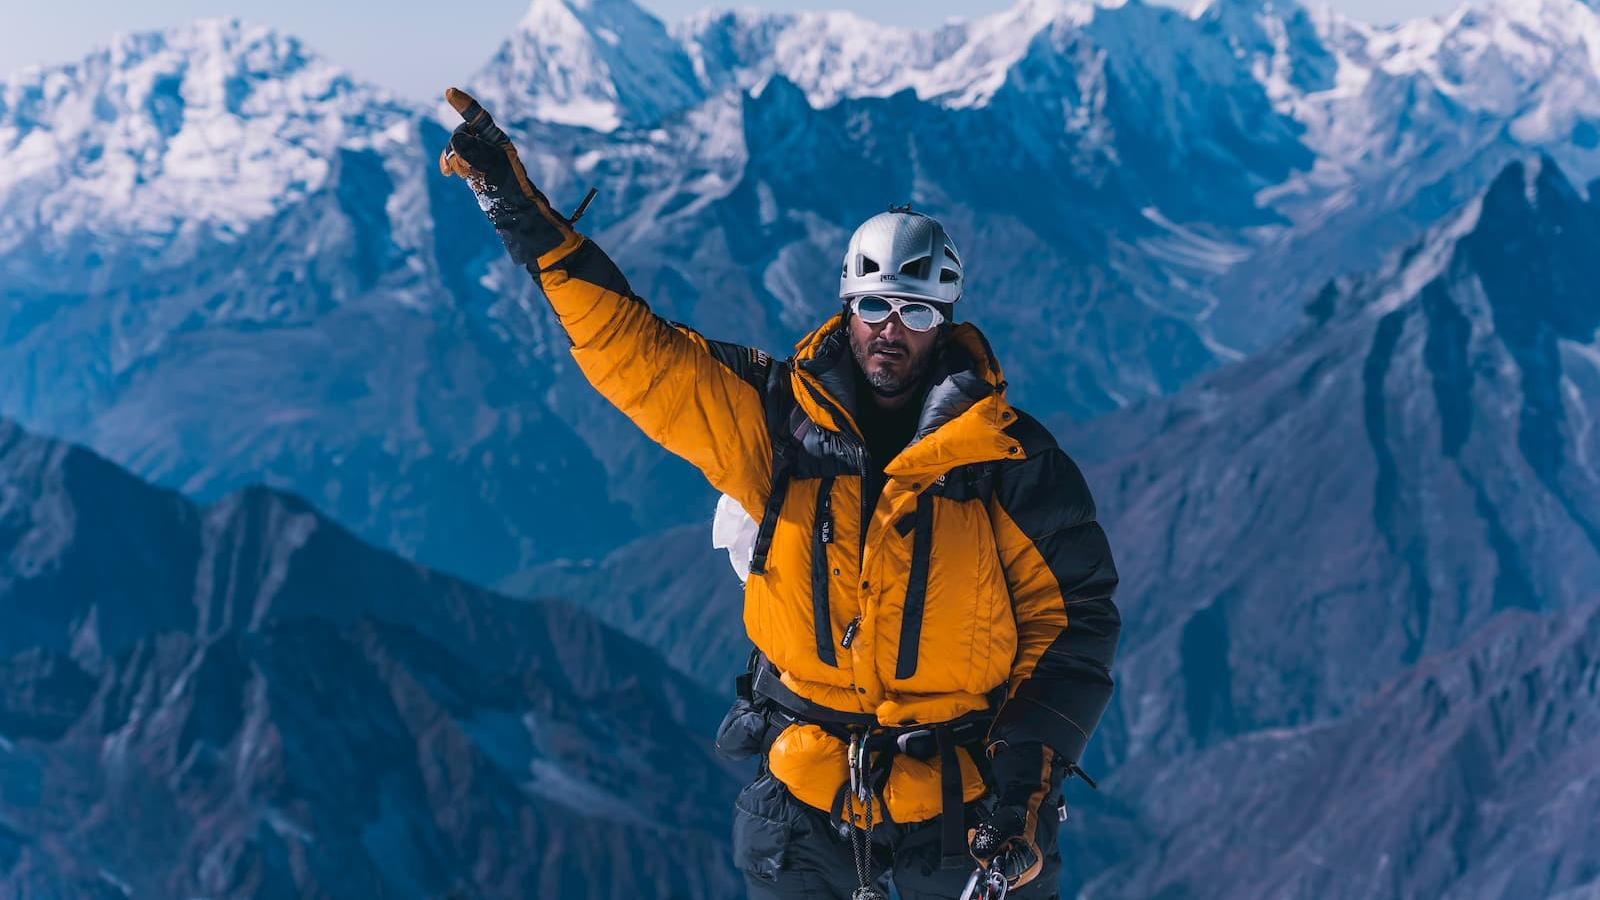 Mountaineer and philanthropist Moe Al Thani becomes first Qatari to summit Ama Dablam mountain